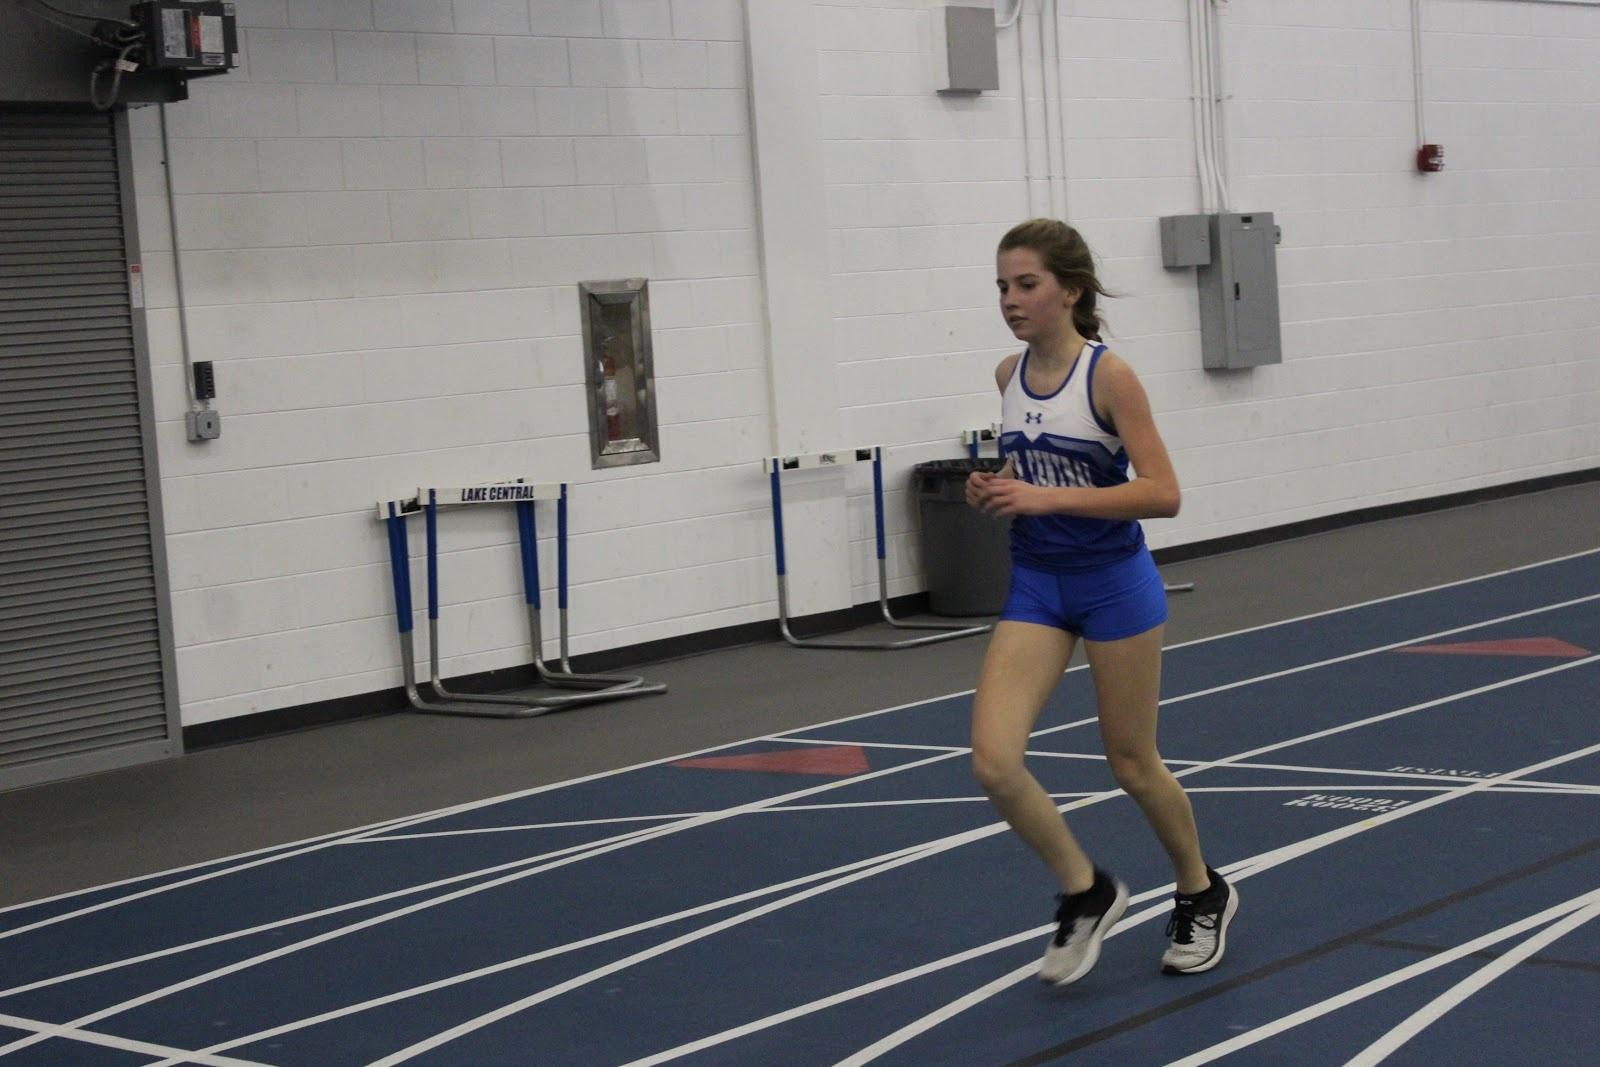 Taylor+Kosiek+%289%29+runs+during+the+one+mile+event+against+Morton+High+School+and+Highland+High+School.+Kosiek+competed+in+both+the+one+mile+and+two+mile+event+in+the+meet+on+Friday%2C+March+8.